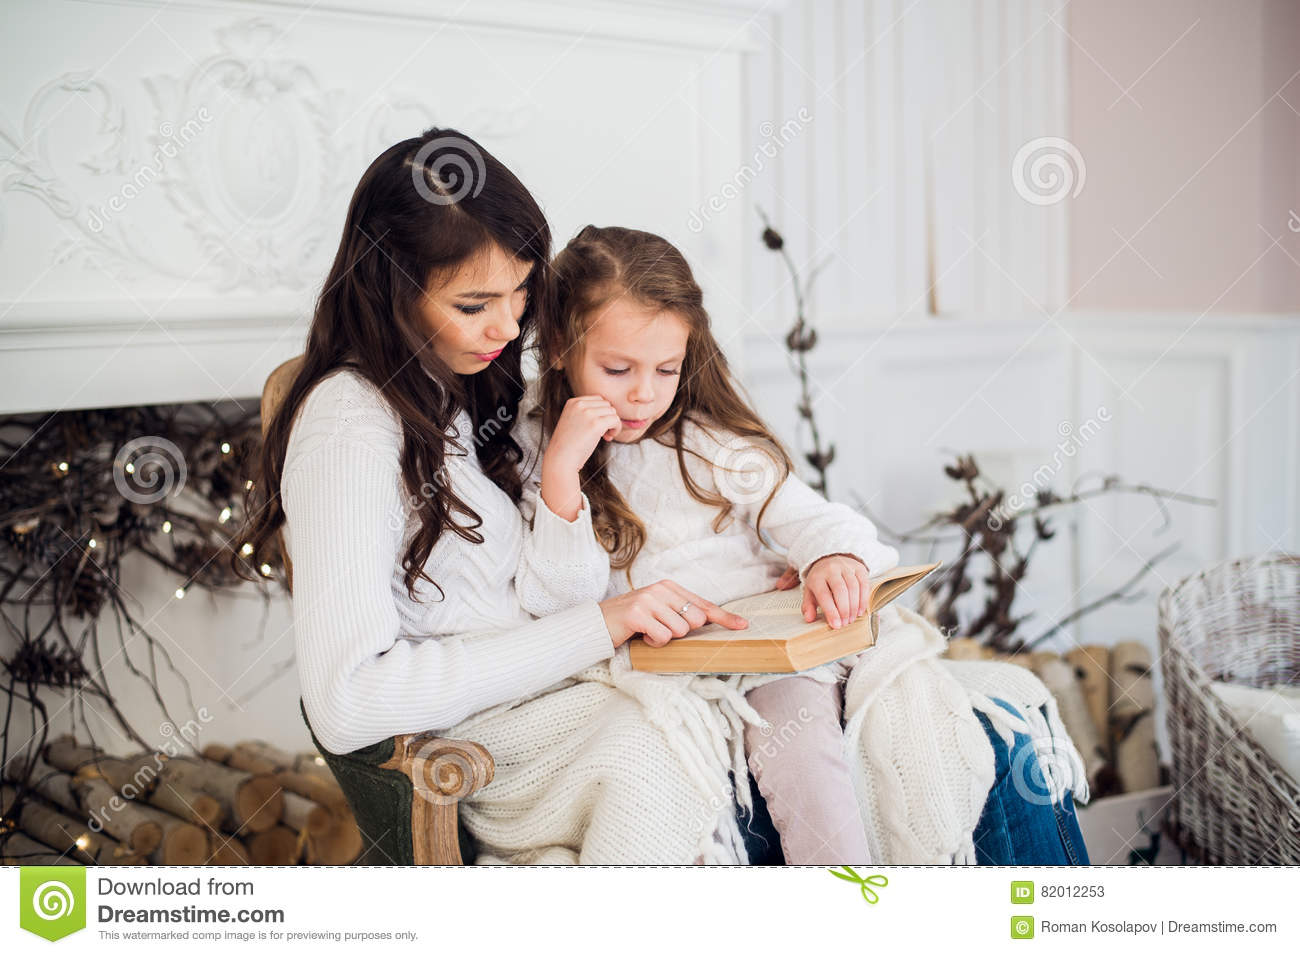 Merry Christmas and Happy Holidays, Pretty young mom reading a book to her cute daughter near tree indoors.